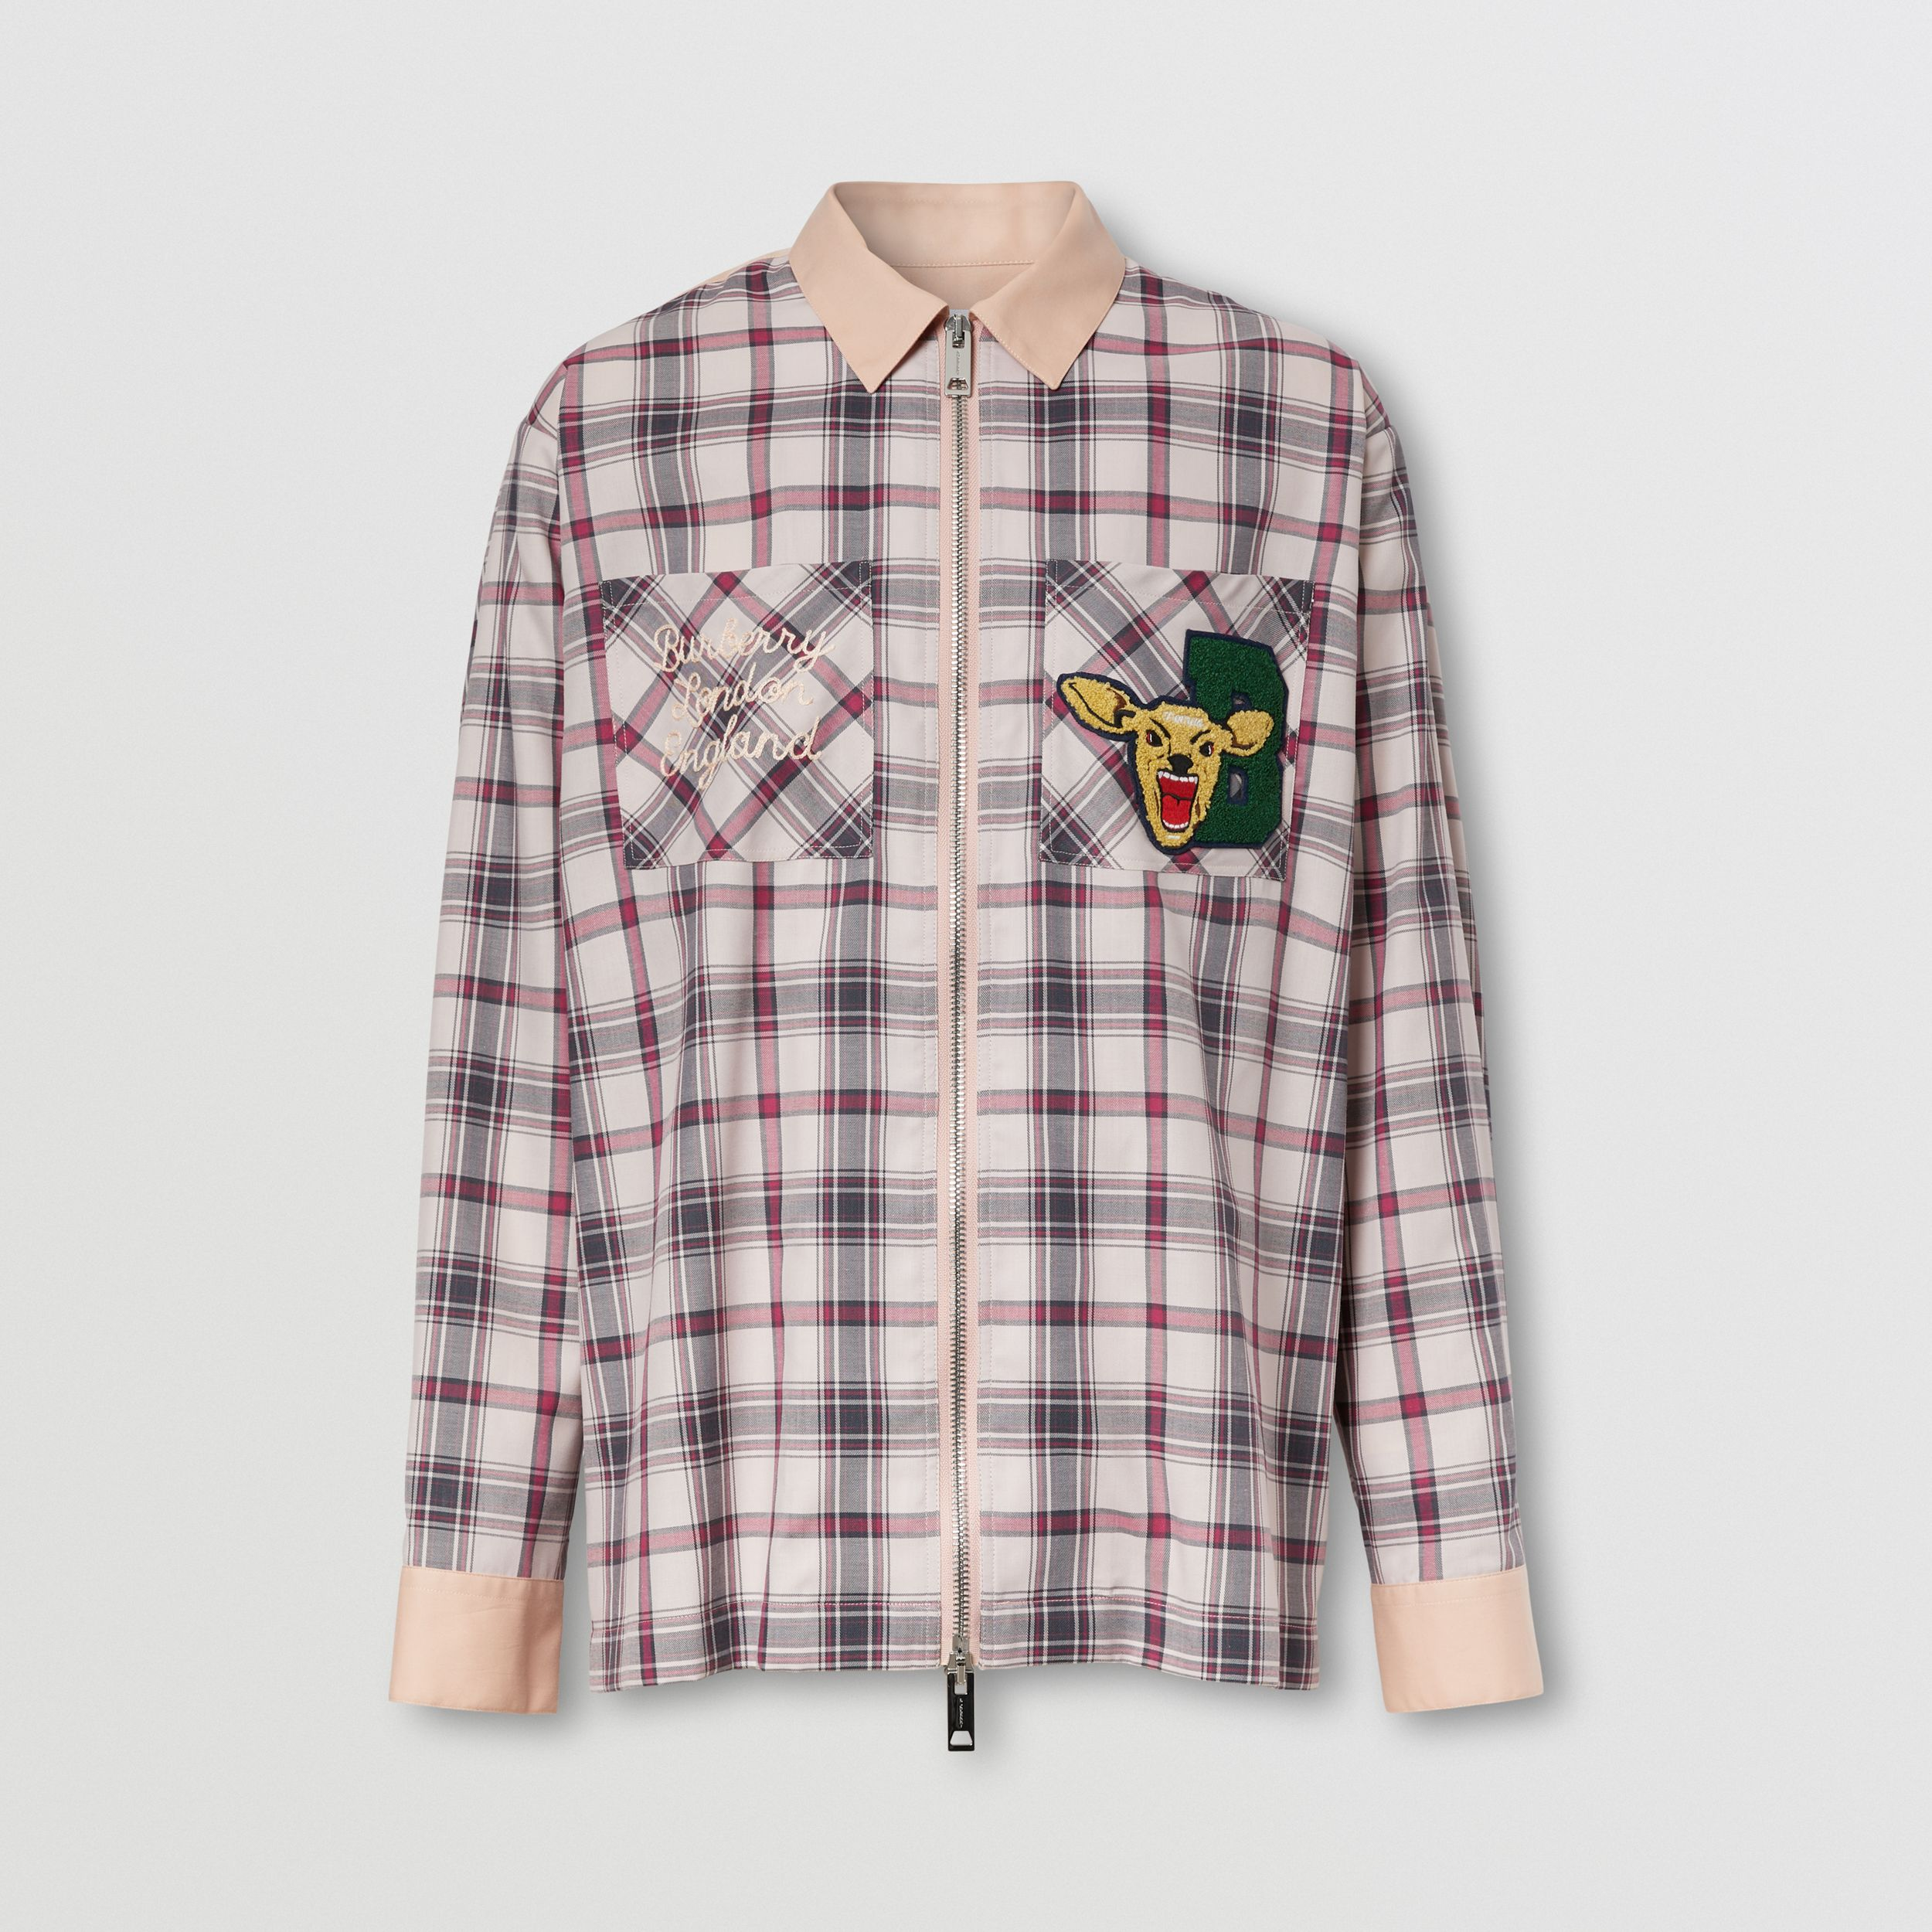 Varsity Graphic Check Technical Cotton Overshirt in Frosted Pink - Men | Burberry Hong Kong S.A.R. - 4